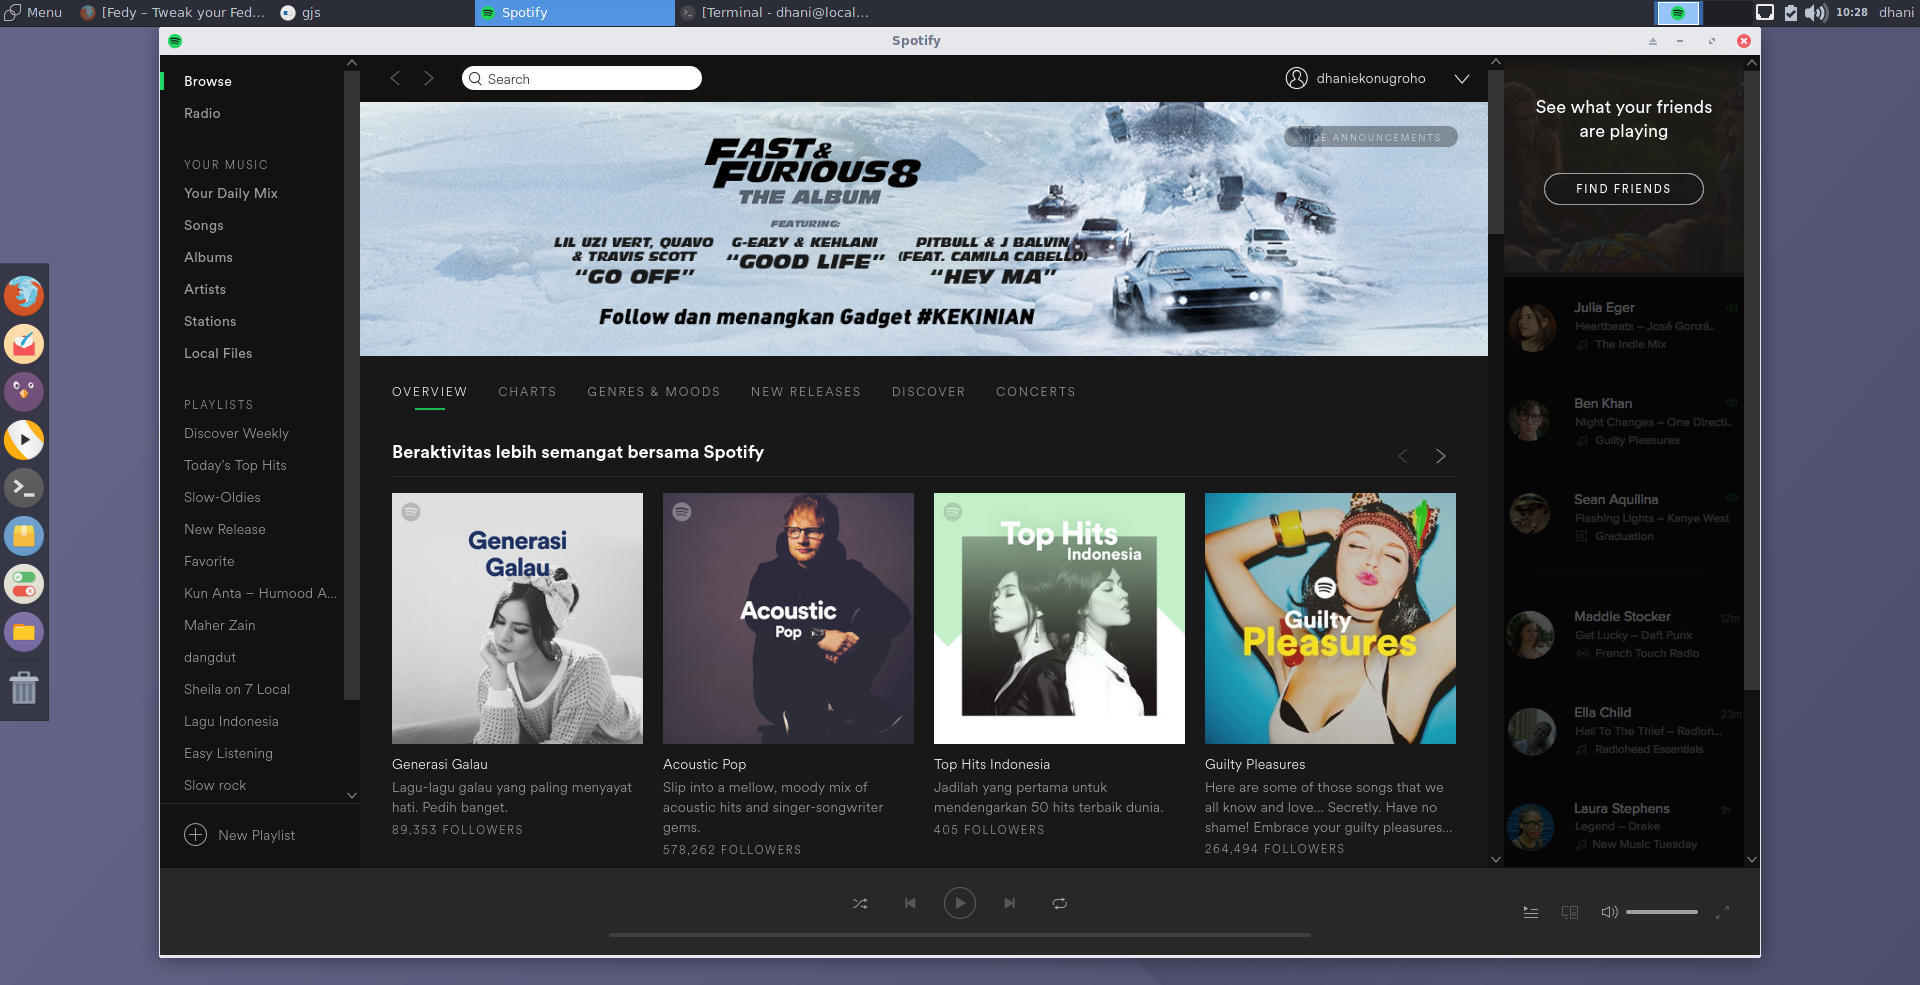 spotify on fedora 25.png